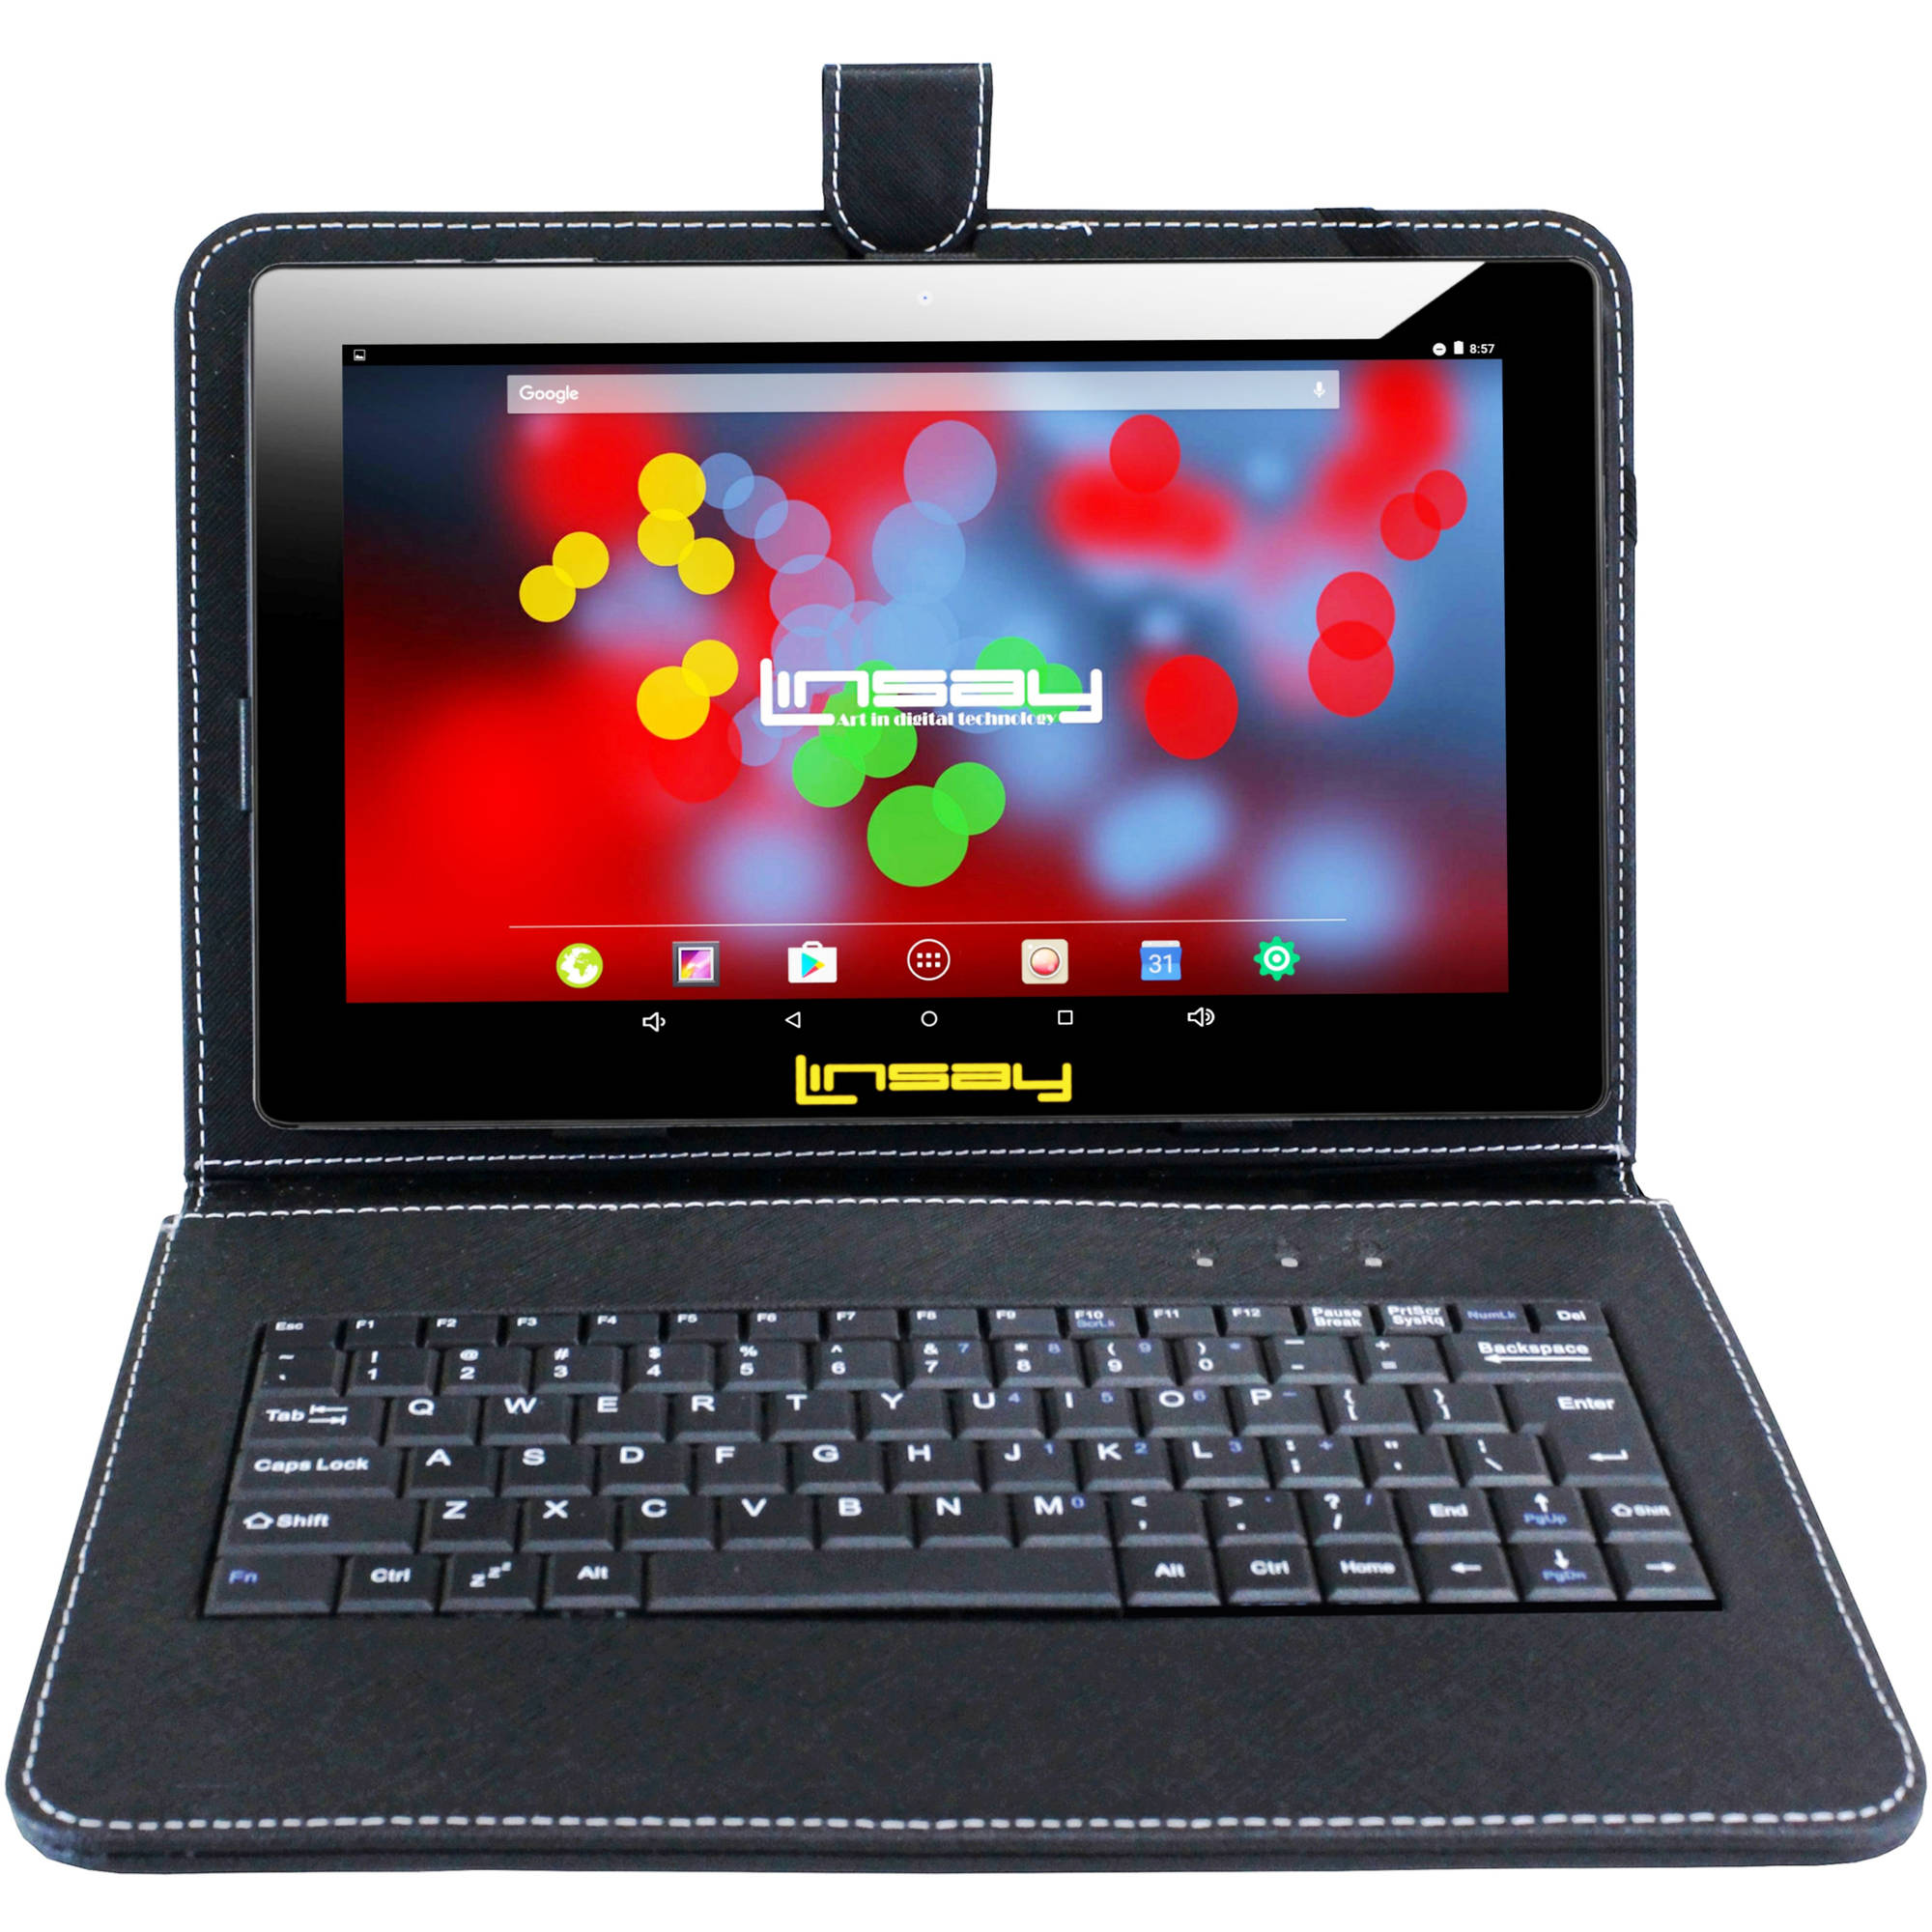 """LINSAY 10.1"""" Quad Core 1280 x 800 IPS Screen 2 GB Ram Android 6.0 Tablet 16 GB with Black Leather Keyboard Case"""